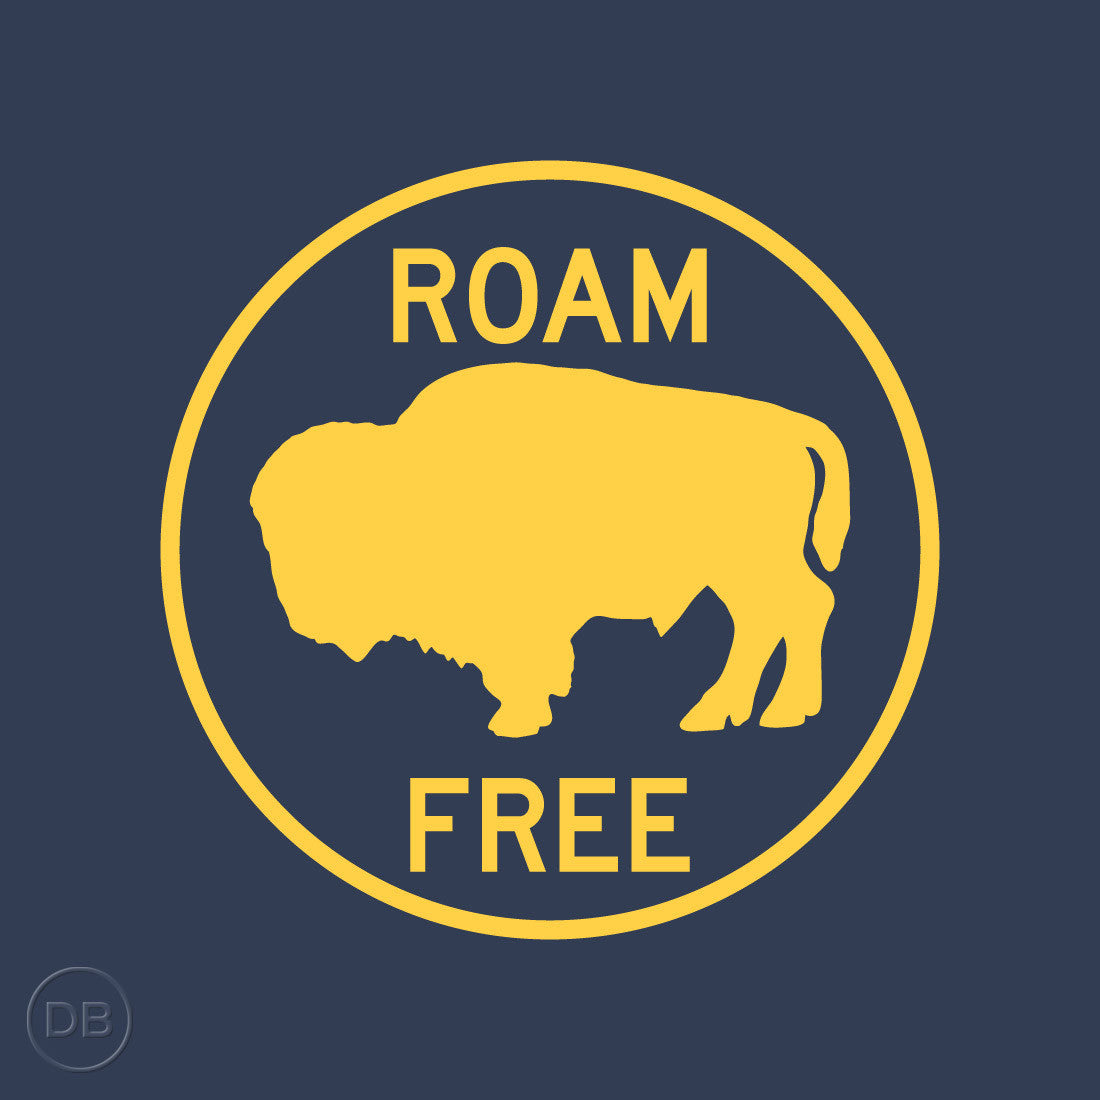 Roam Free Tee by Indigenous artist David Bernie